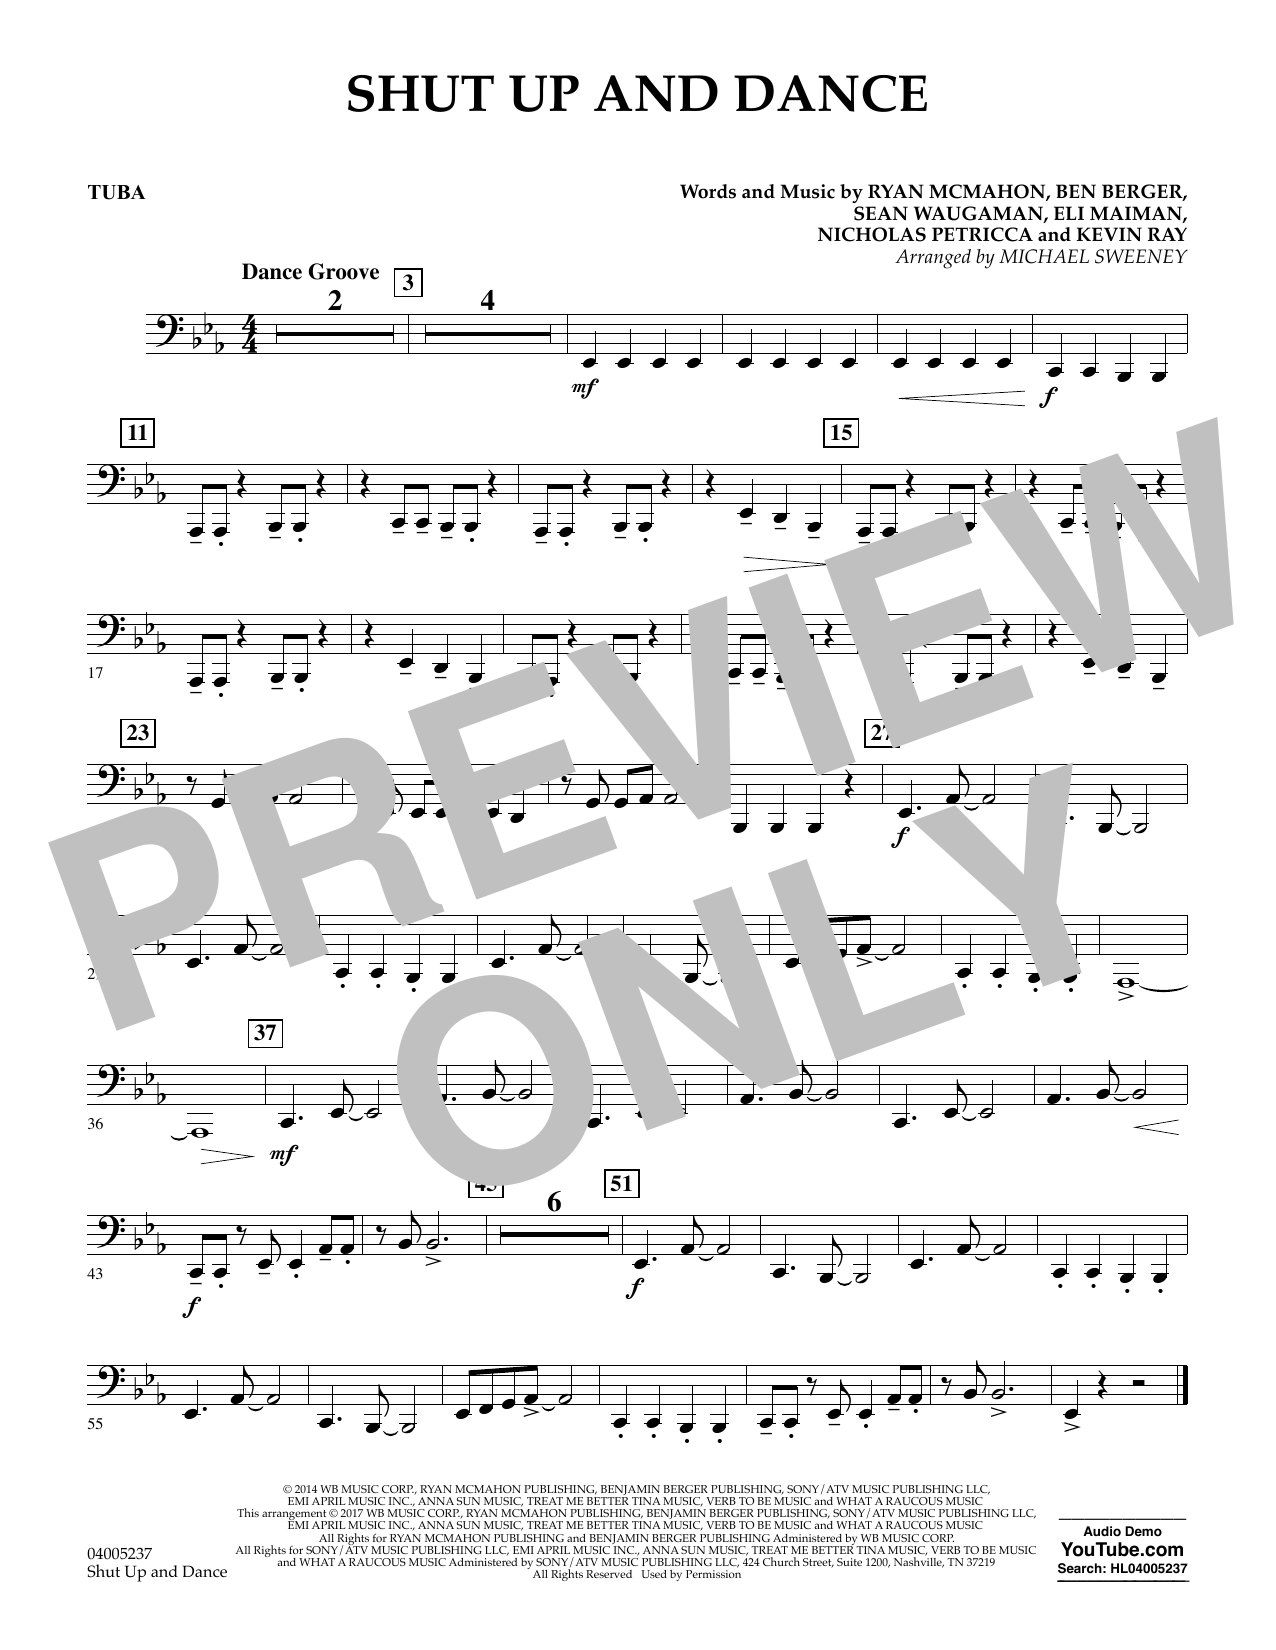 Shut Up and Dance - Tuba by Michael Sweeney Concert Band Digital Sheet Music